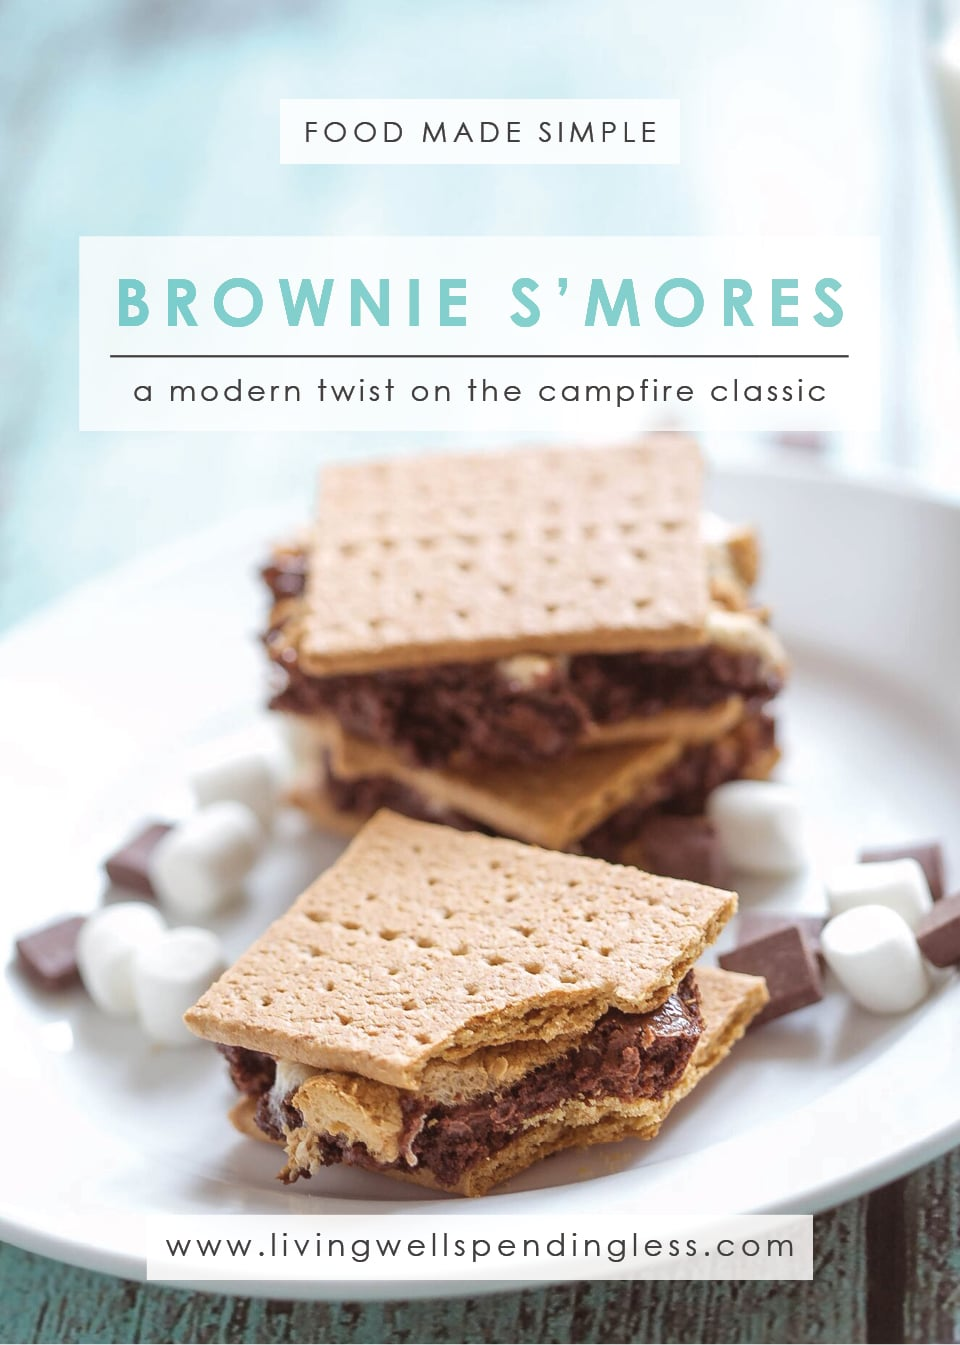 Brownie S'mores | Double Chocolate Brownies | Brownie S'more Recipe | A Modern Twist on the Campfire Classic